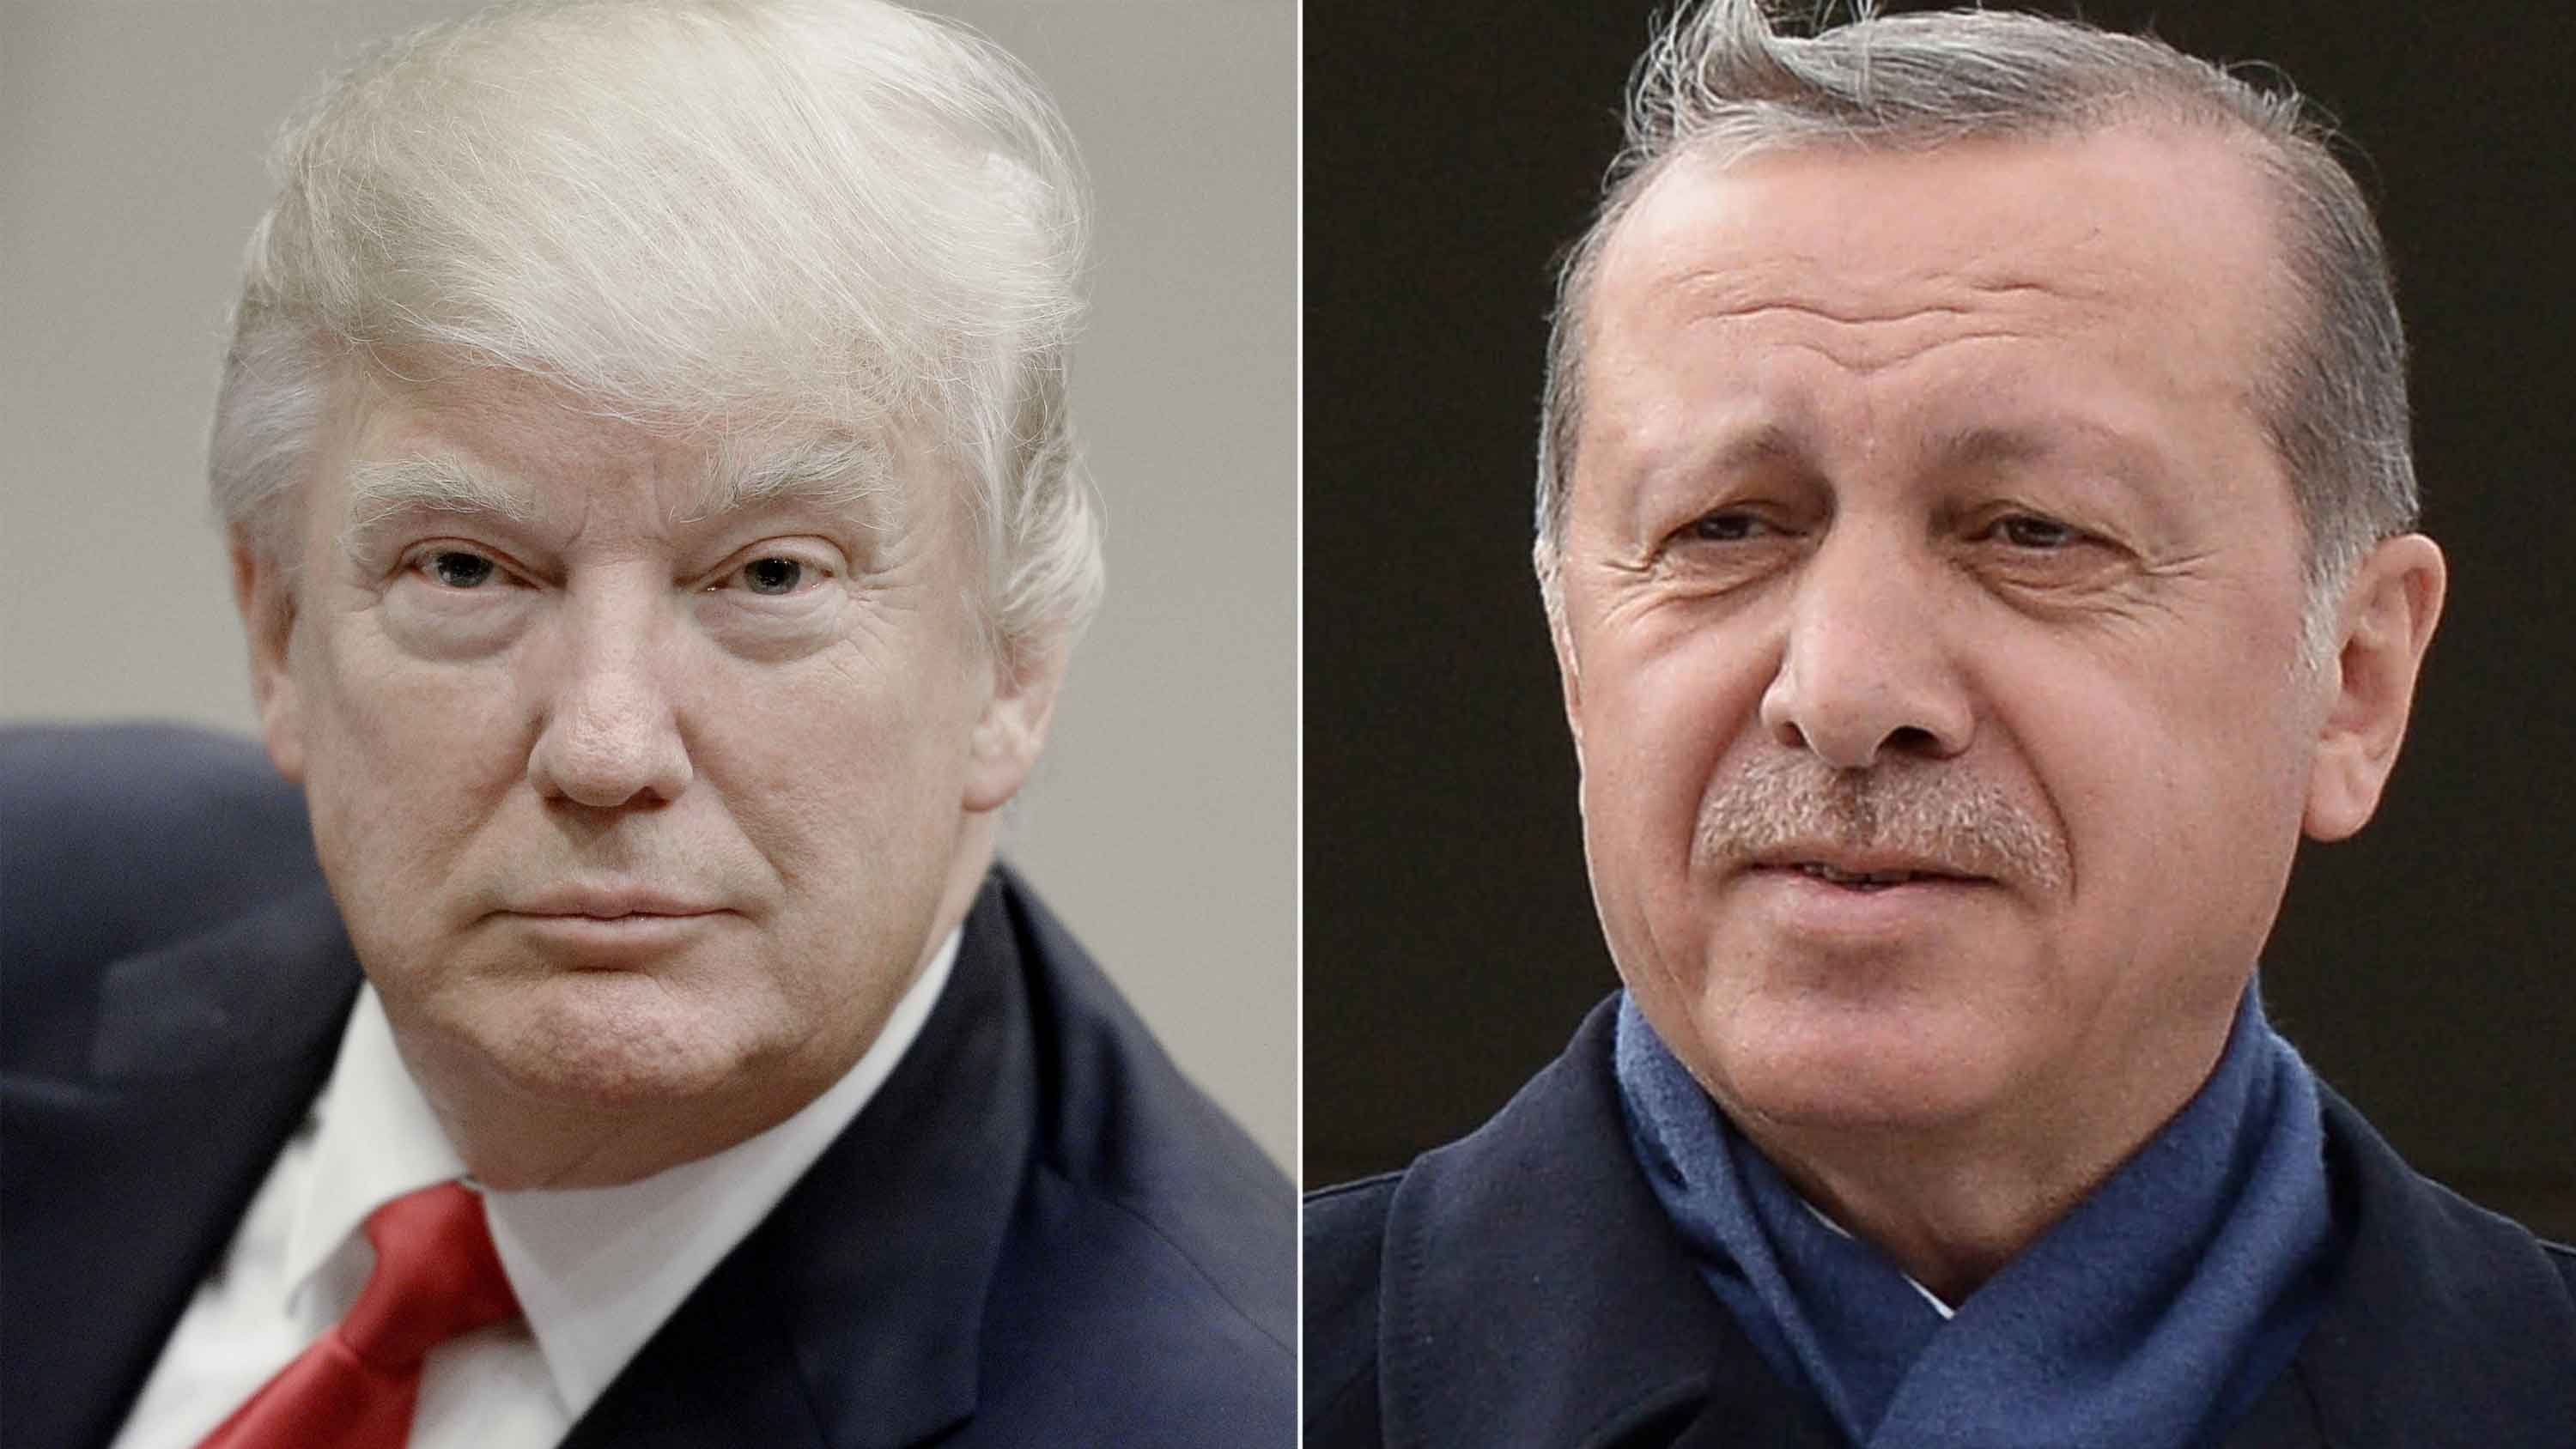 President Donald Trump and Turkish President Recep Tayyip Erdogan